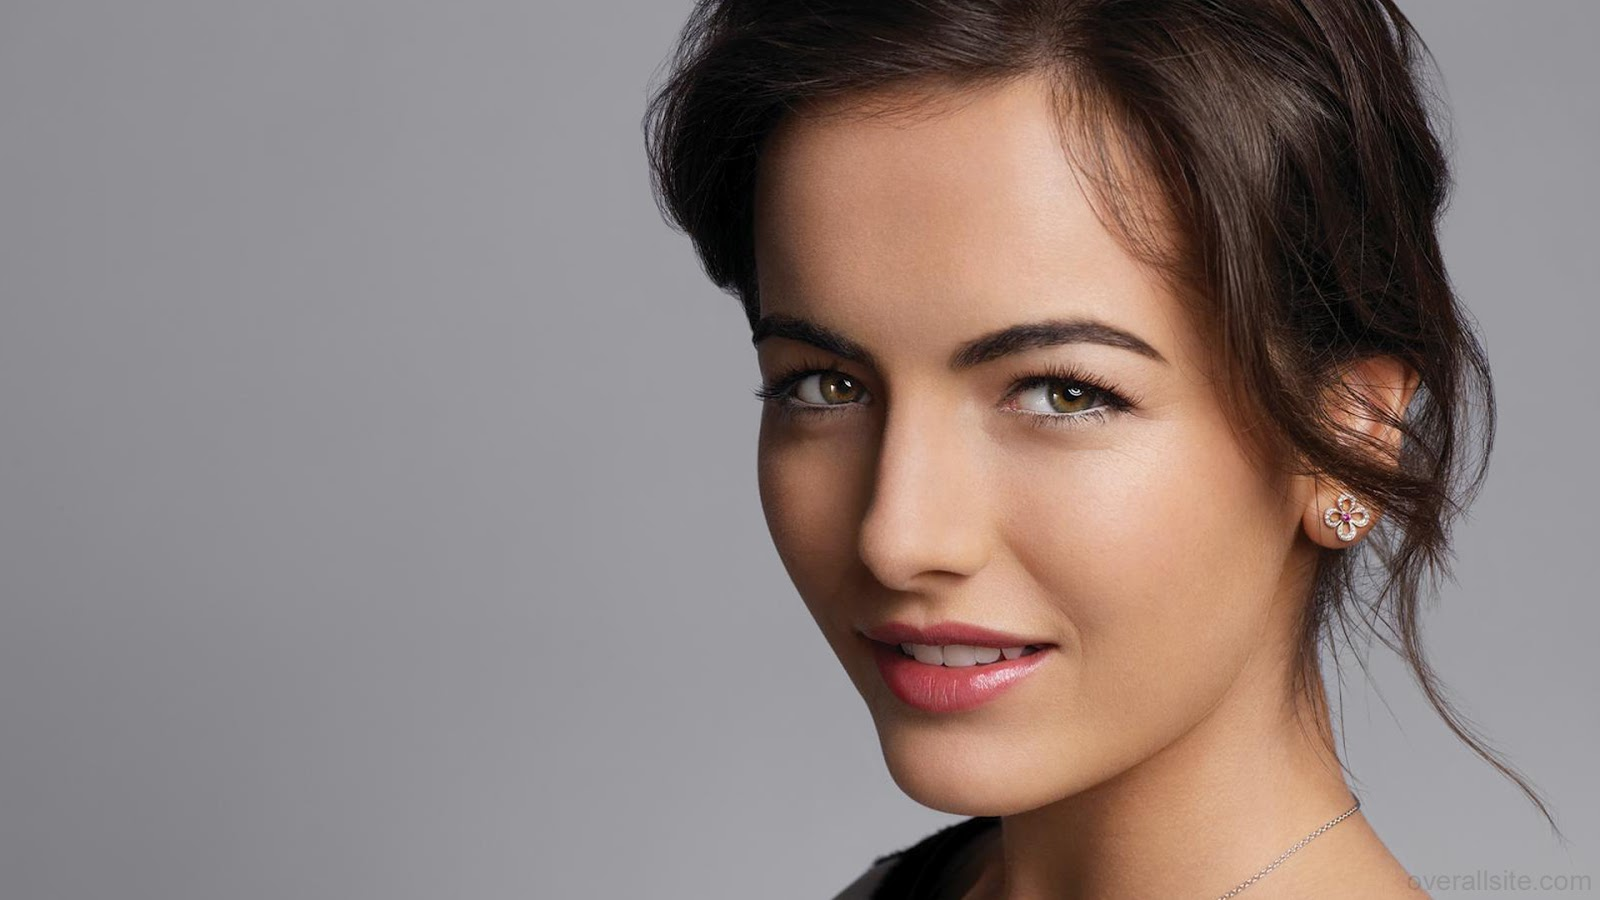 miley cyrus hot: camilla belle new hd wallpapers 2012